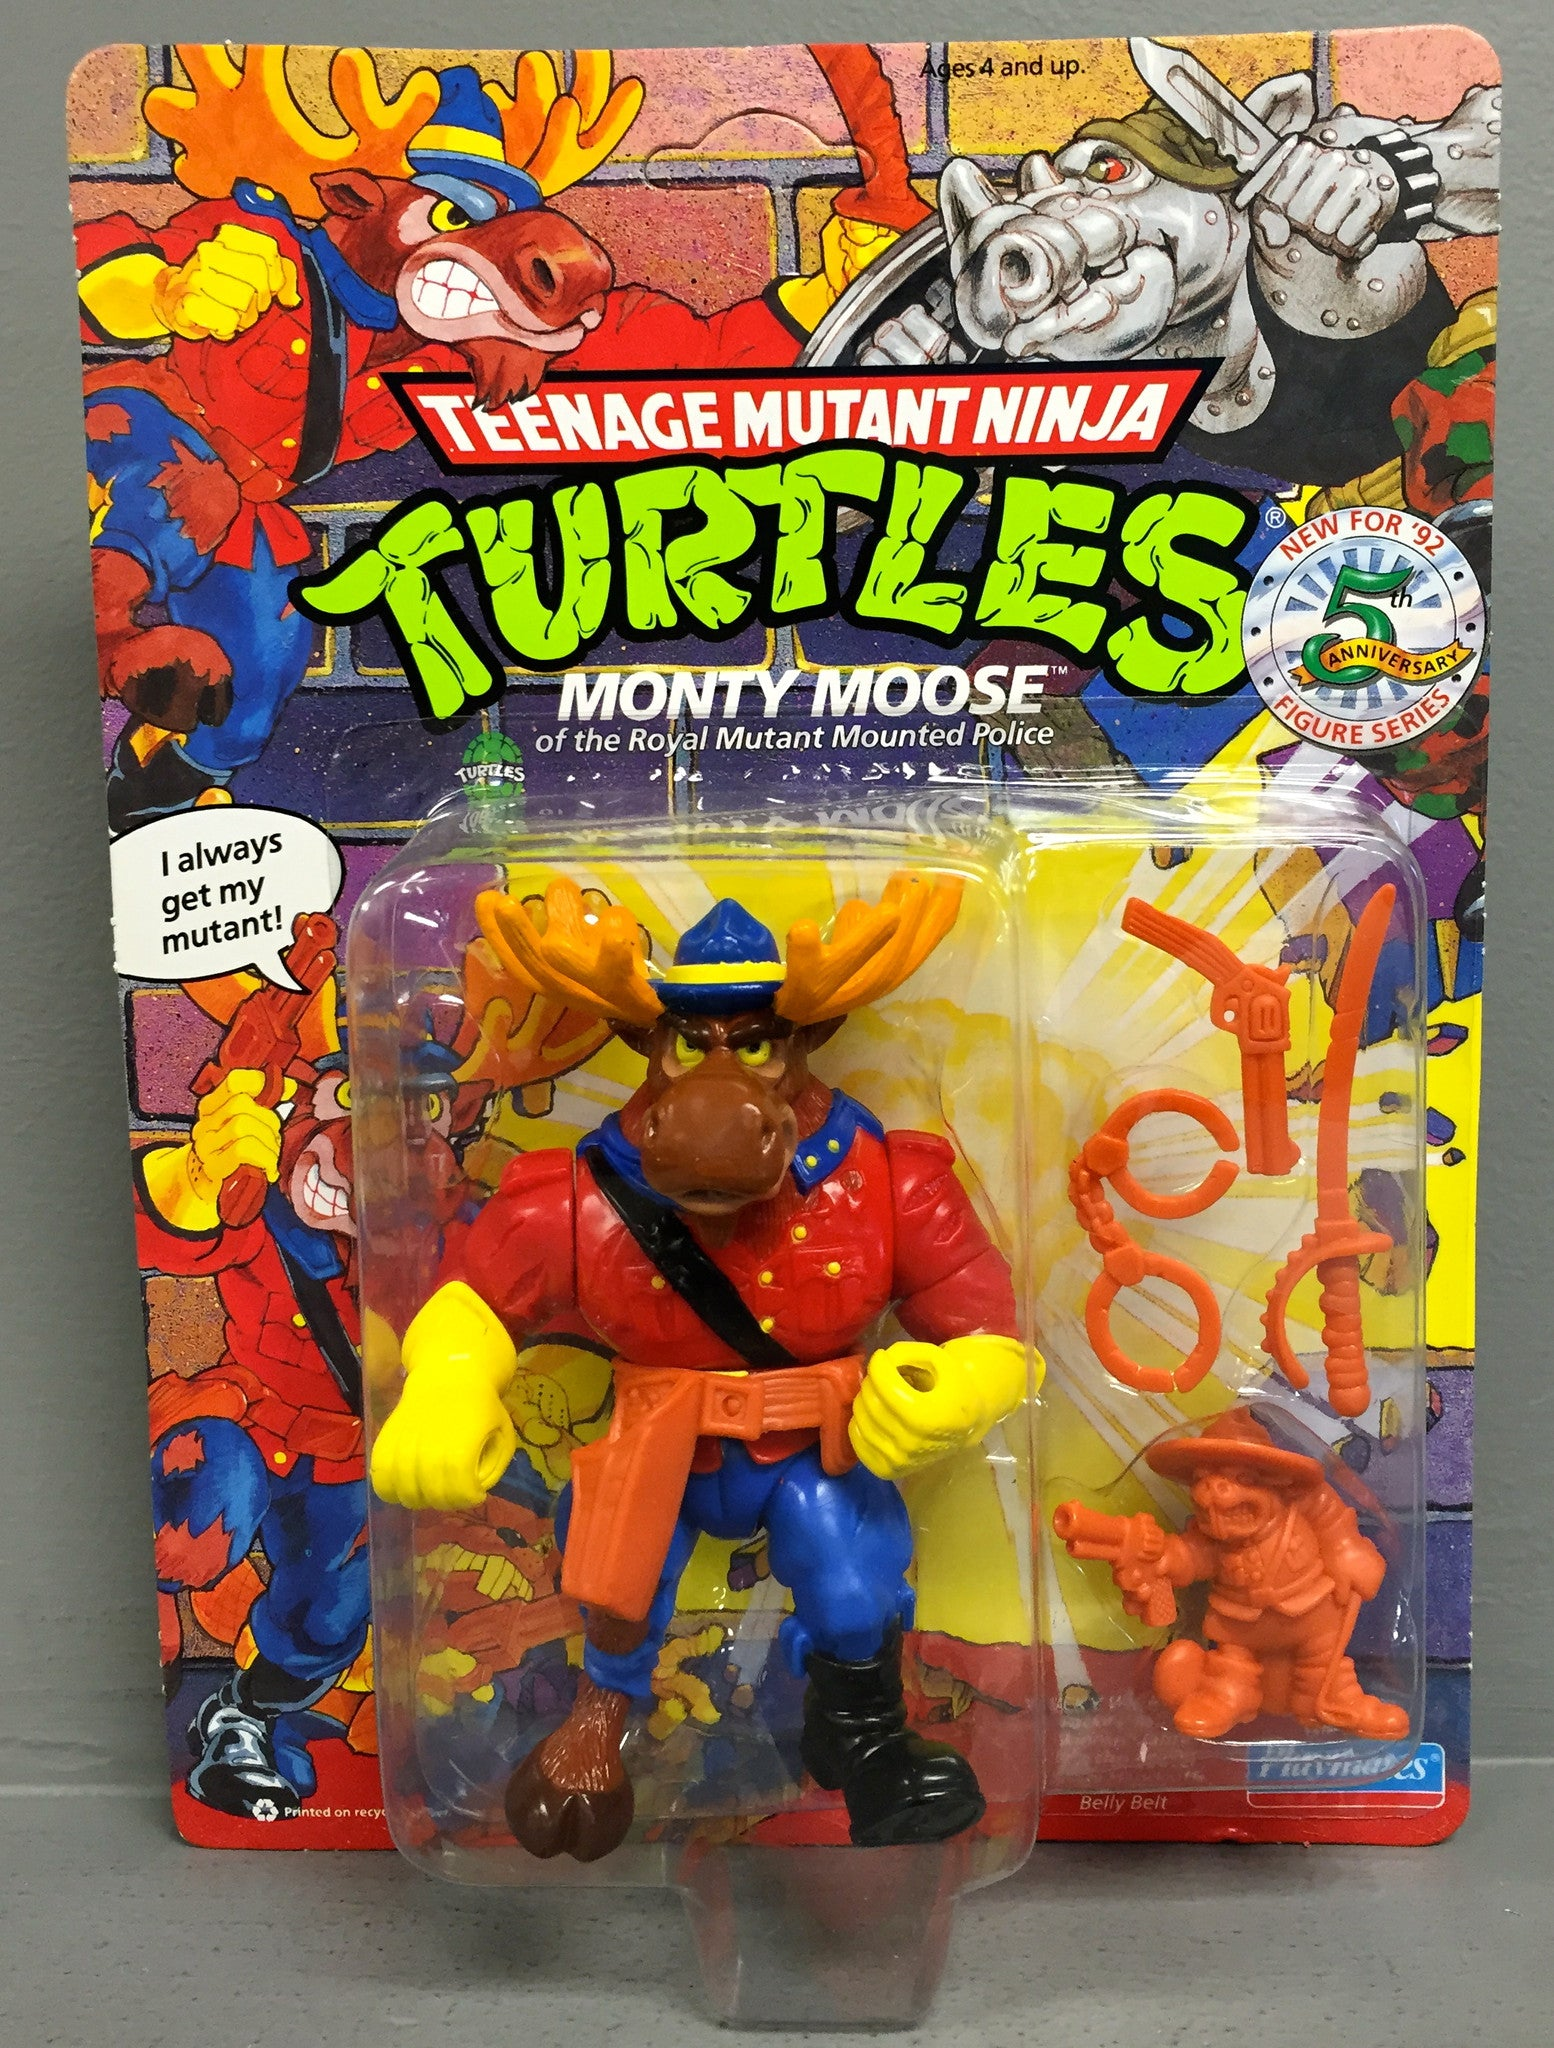 Vintage Teenage Mutant Ninja Turtles Monty Moose Action Figure